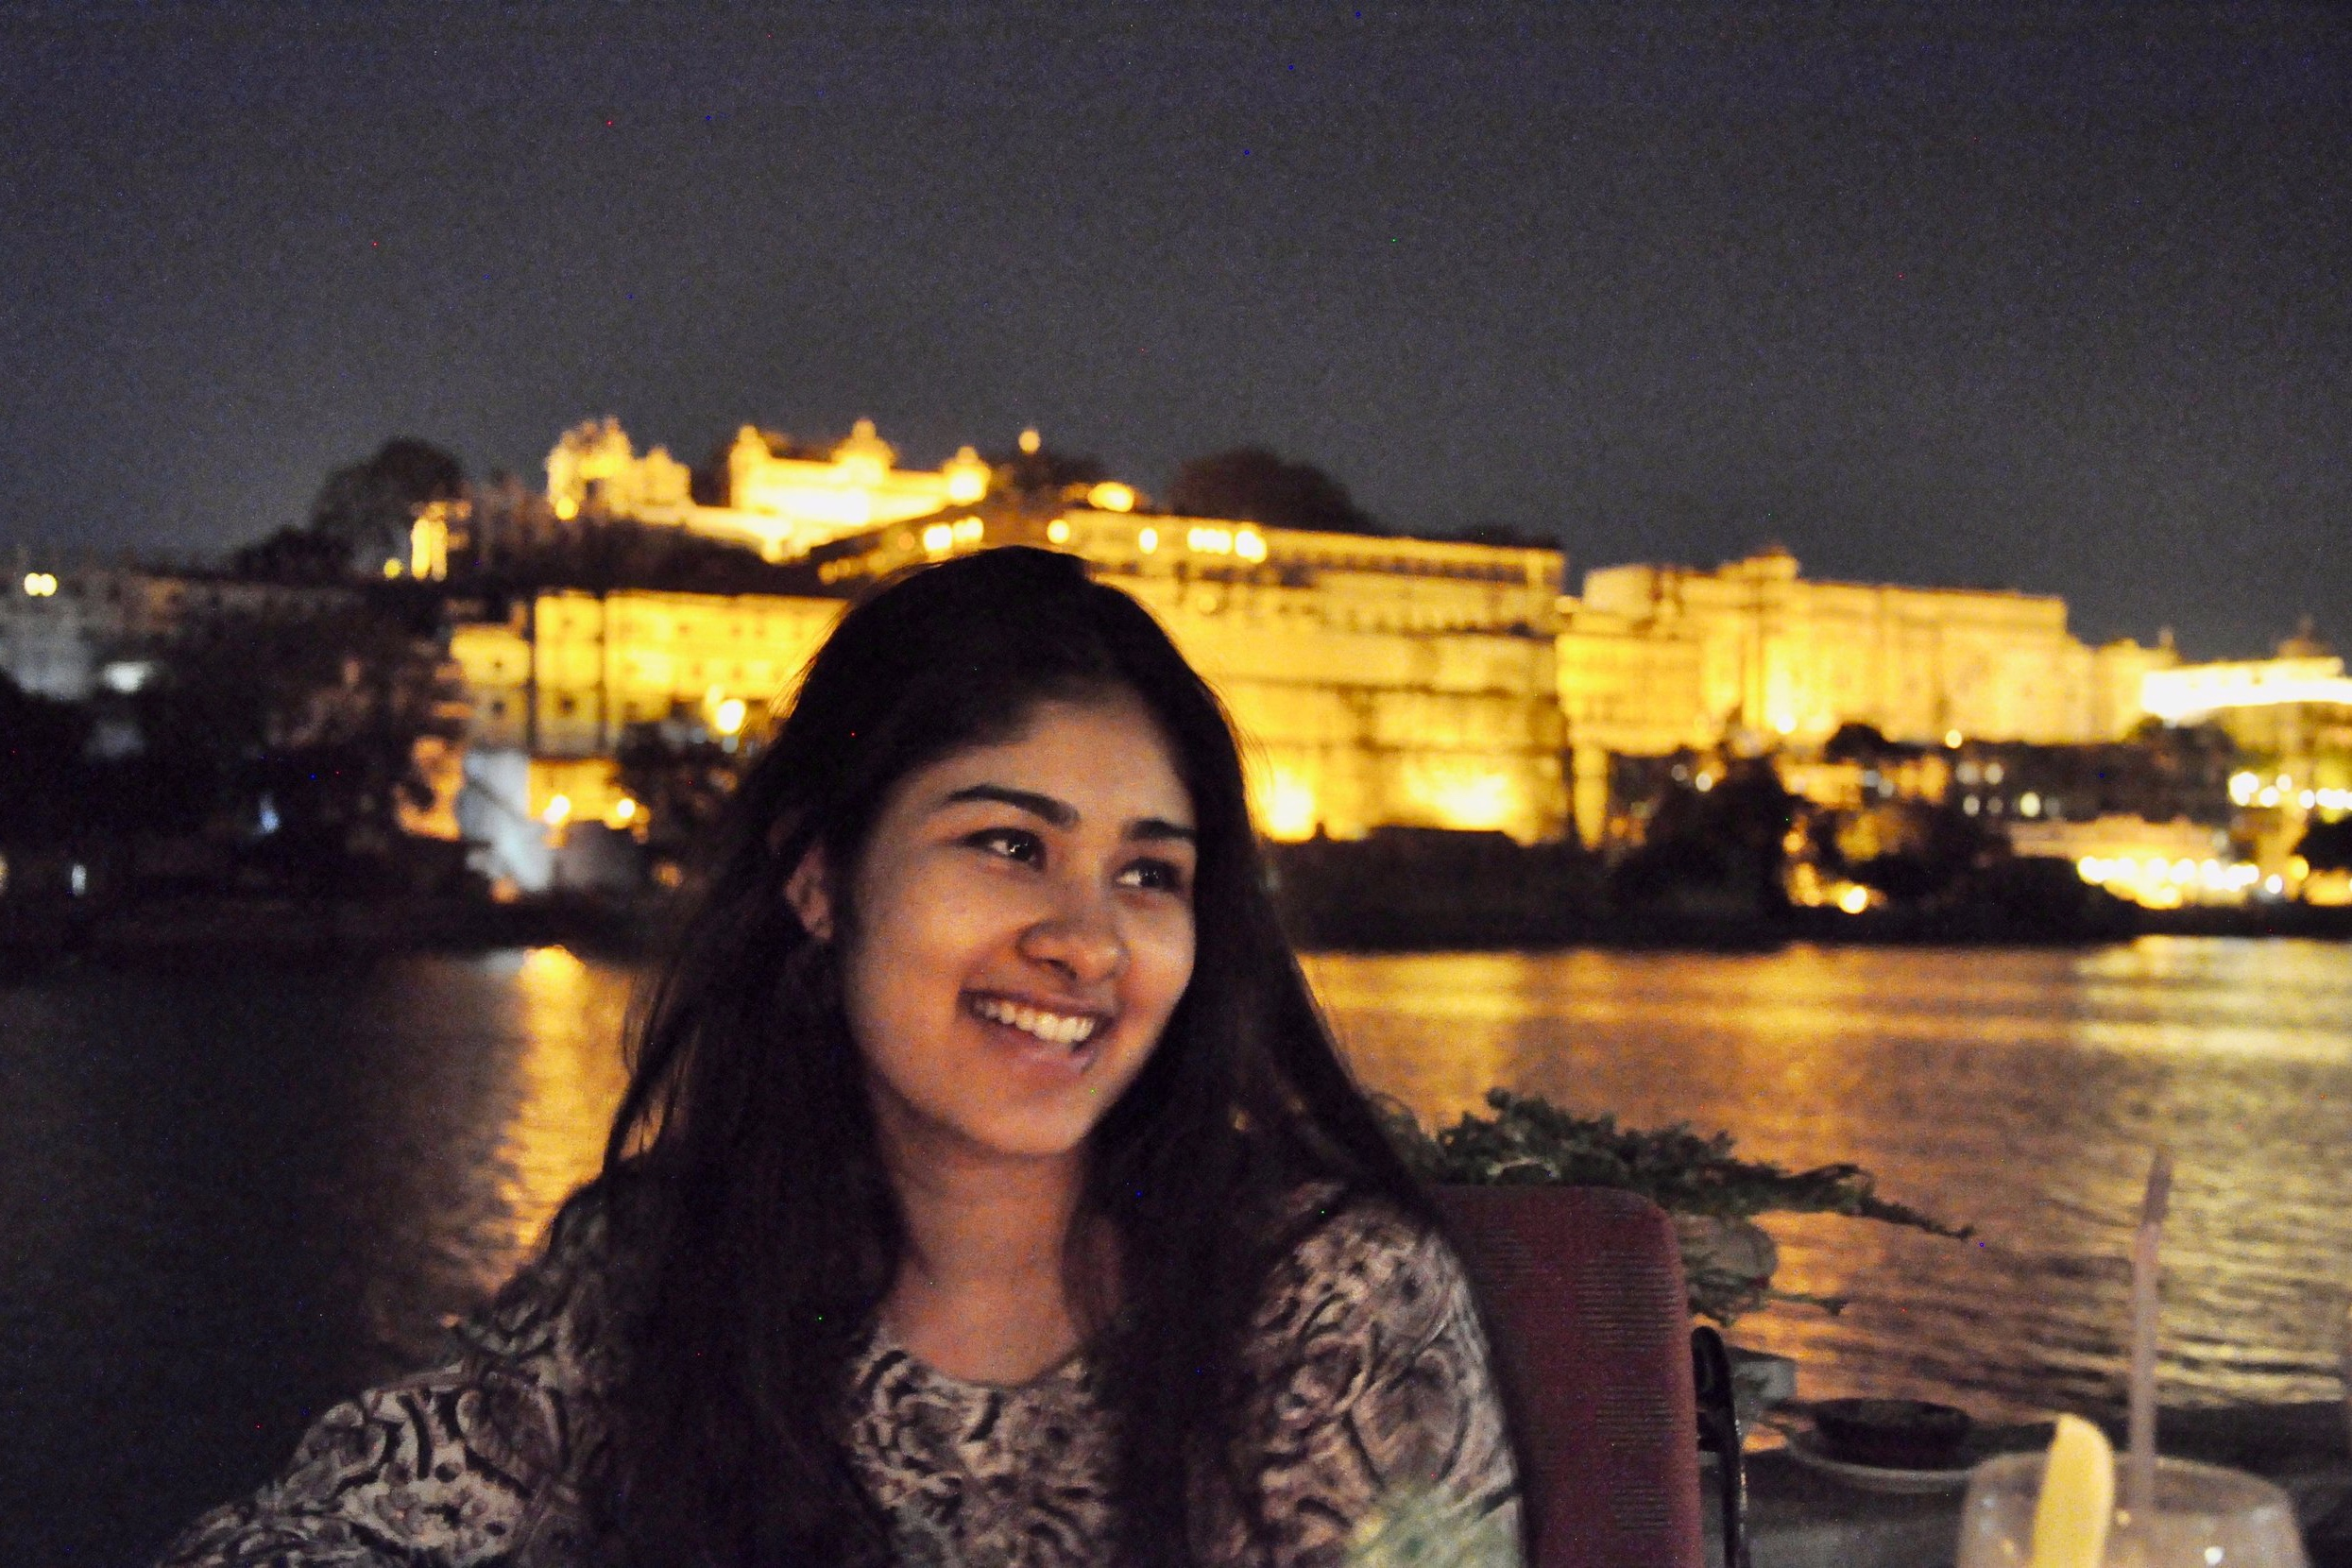 FROM LIVING IN INDIA, TO STUDYING IN BOSTON, TO INTERNING IN NEW YORK - By Riya Haria, Copywriting Intern, Digitas Health